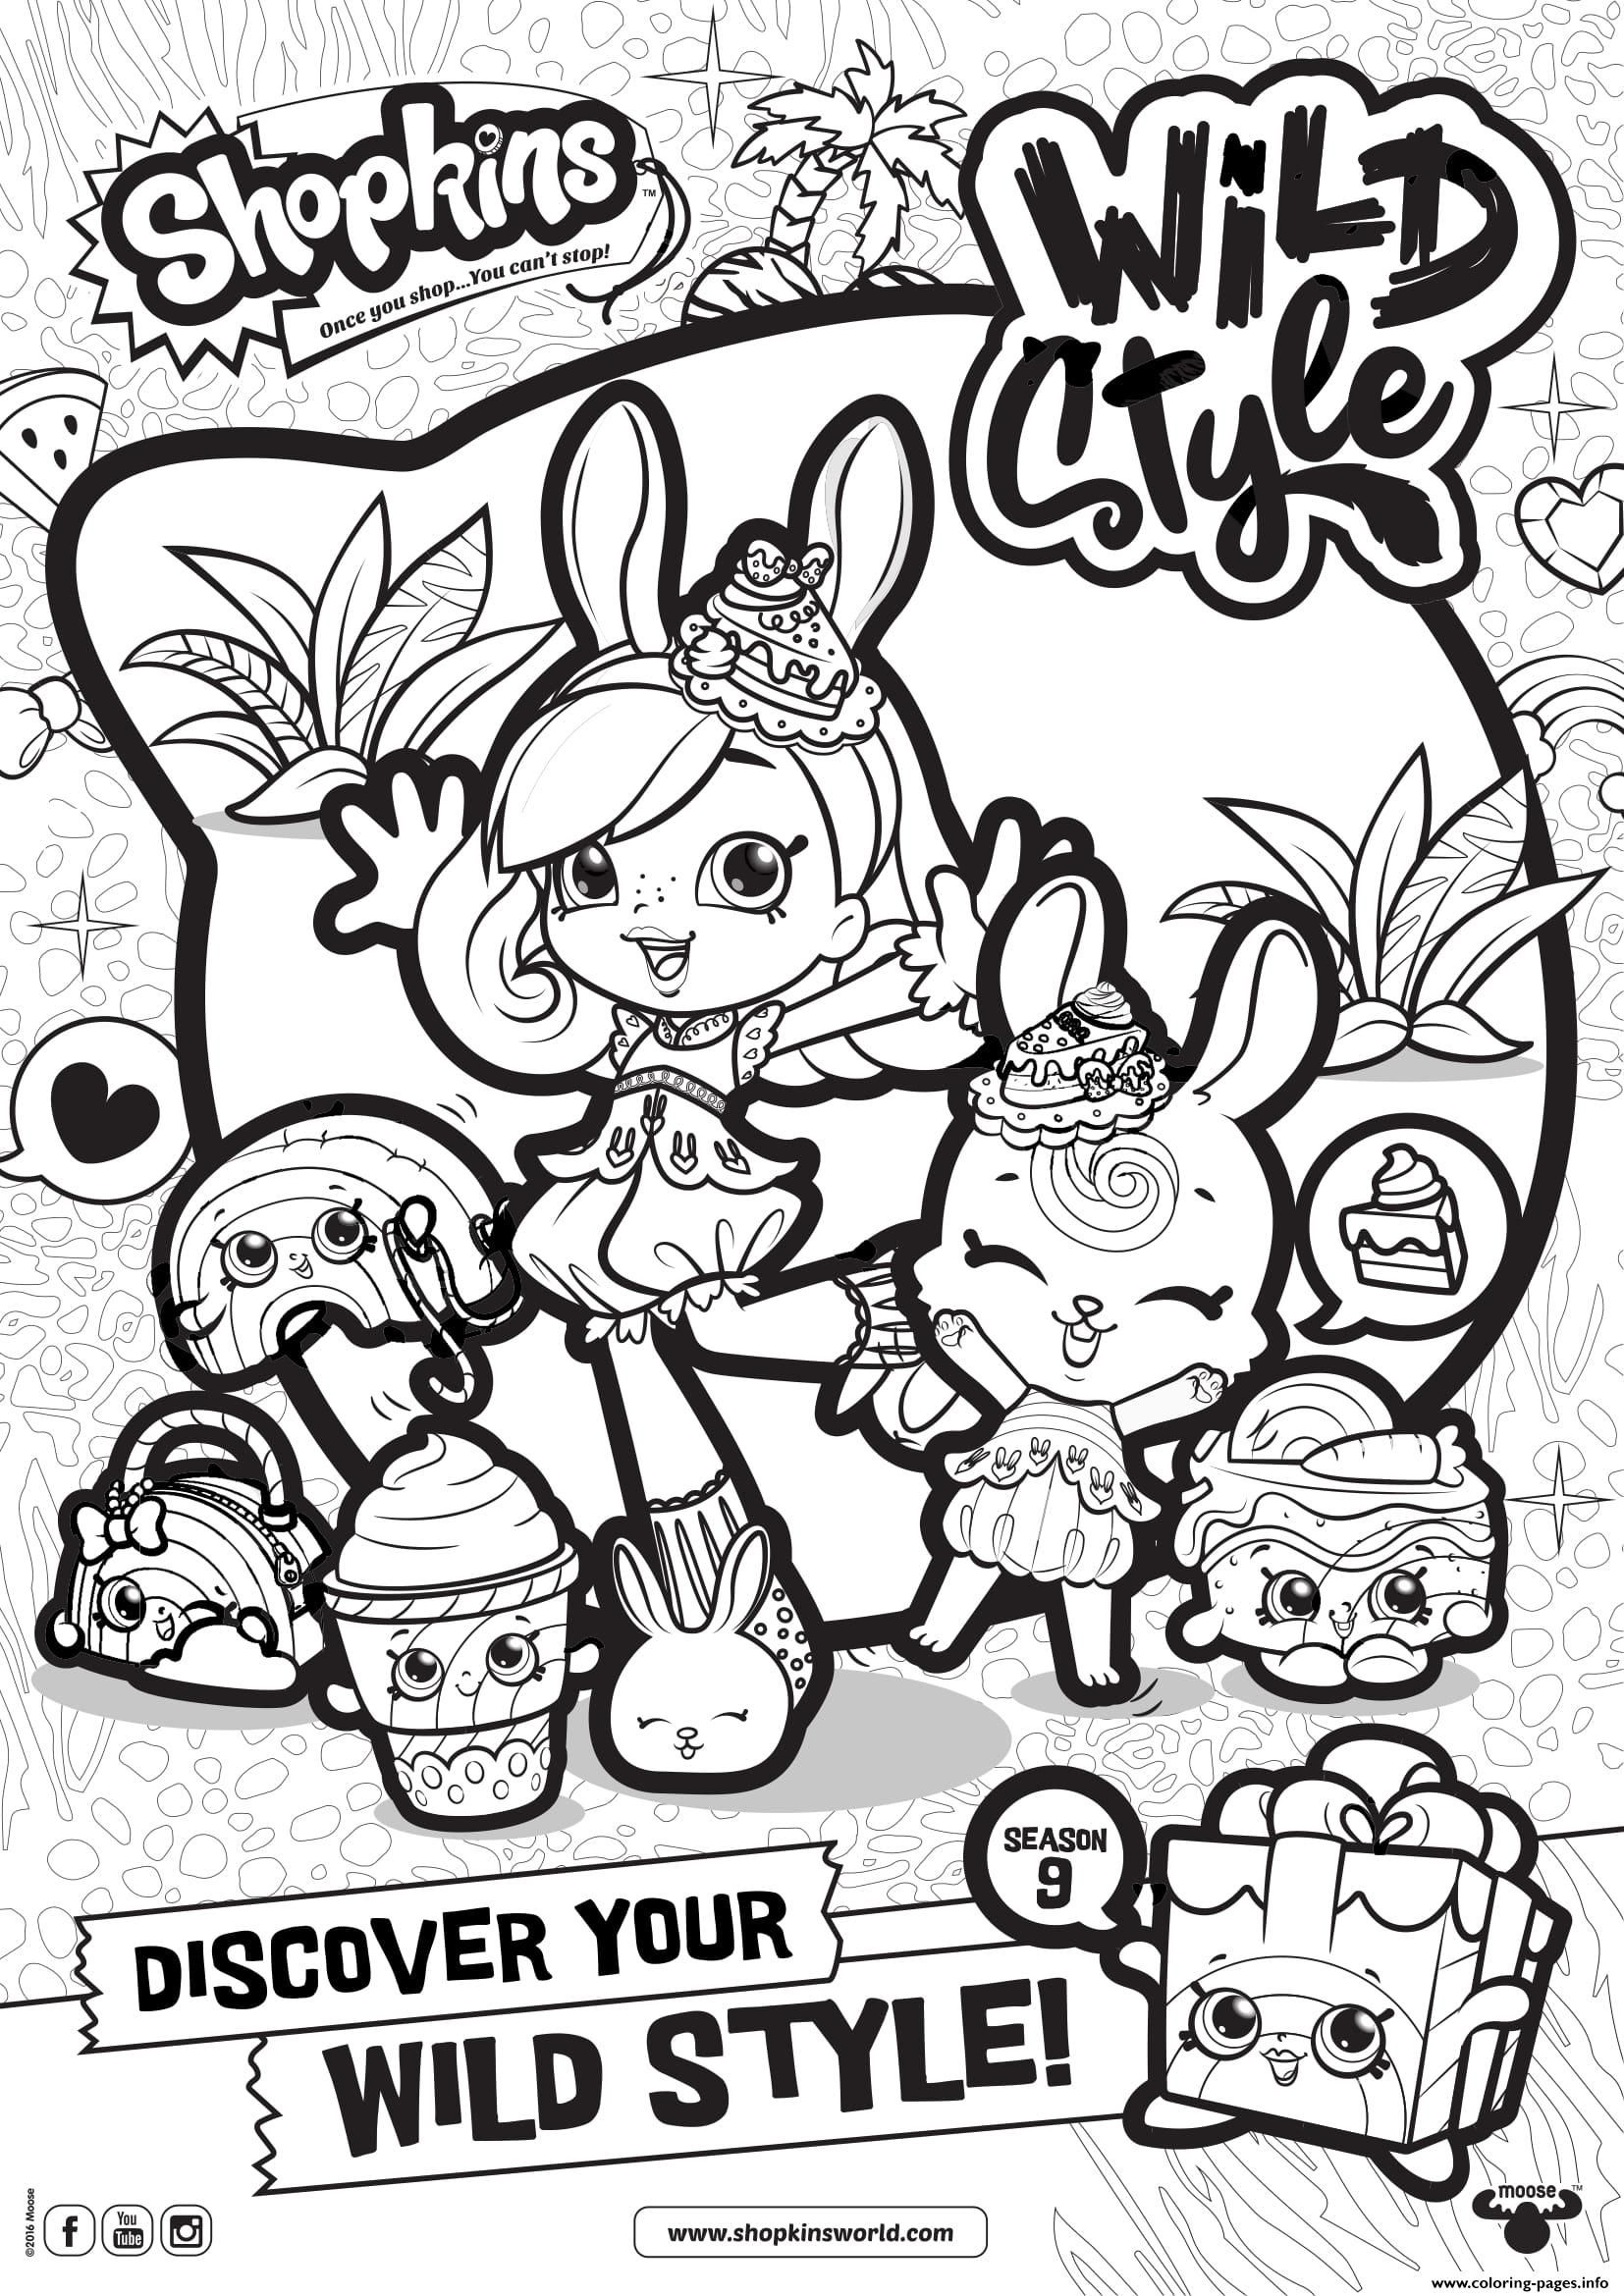 Print Shopkins Season 9 Wild Style 6 Coloring Pages Shopkin